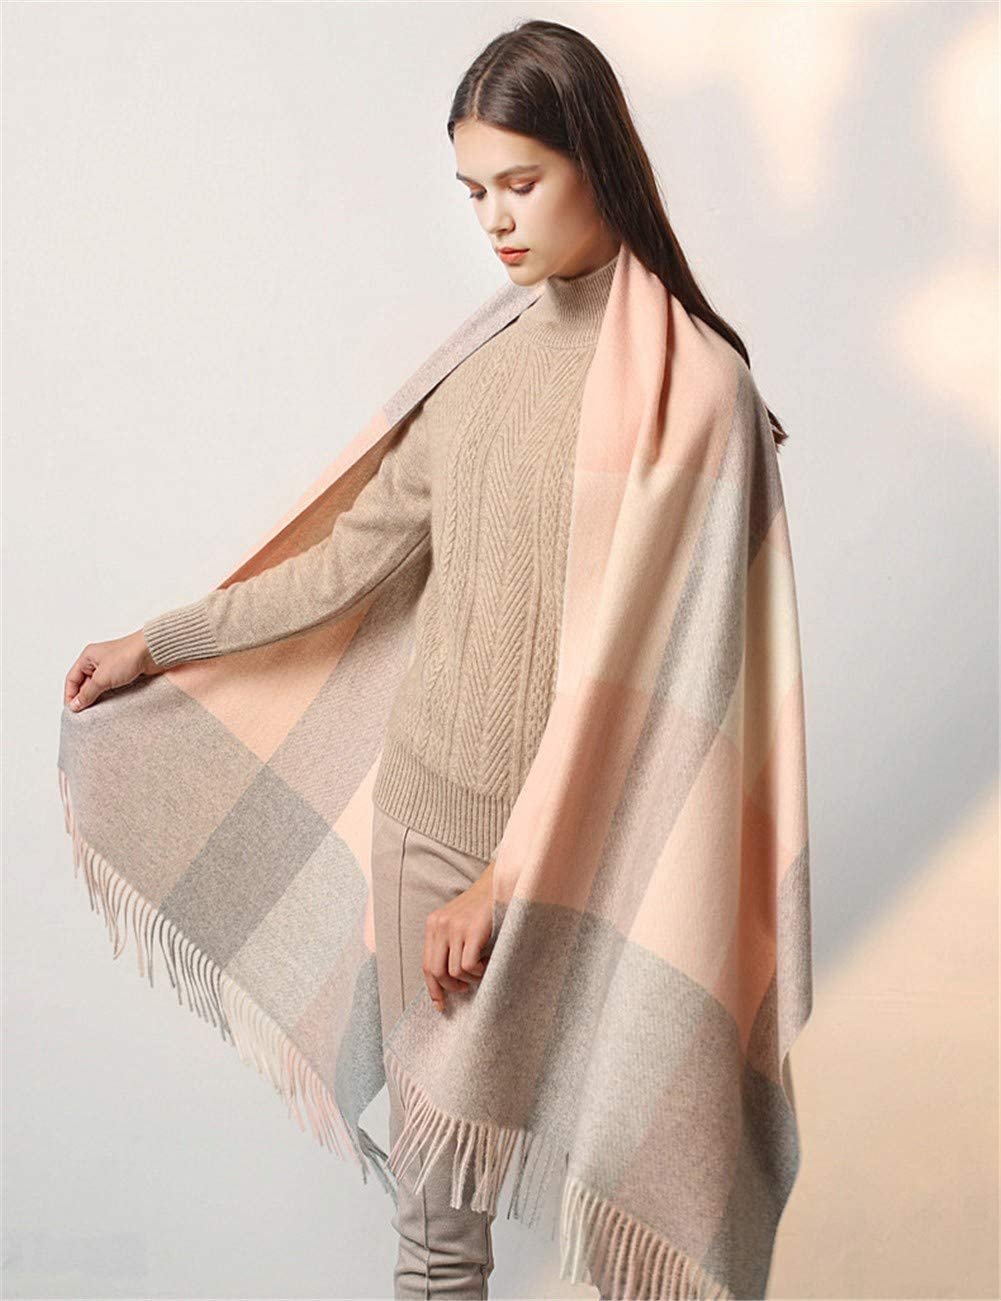 Dr.COLORFUL Large Soft Plaid Scarf Women Tassel Thicken Oversized Wrap Shawl Winter Soft Warm Cashmere Long Blanket Scarves 200/×65cmLight Pink